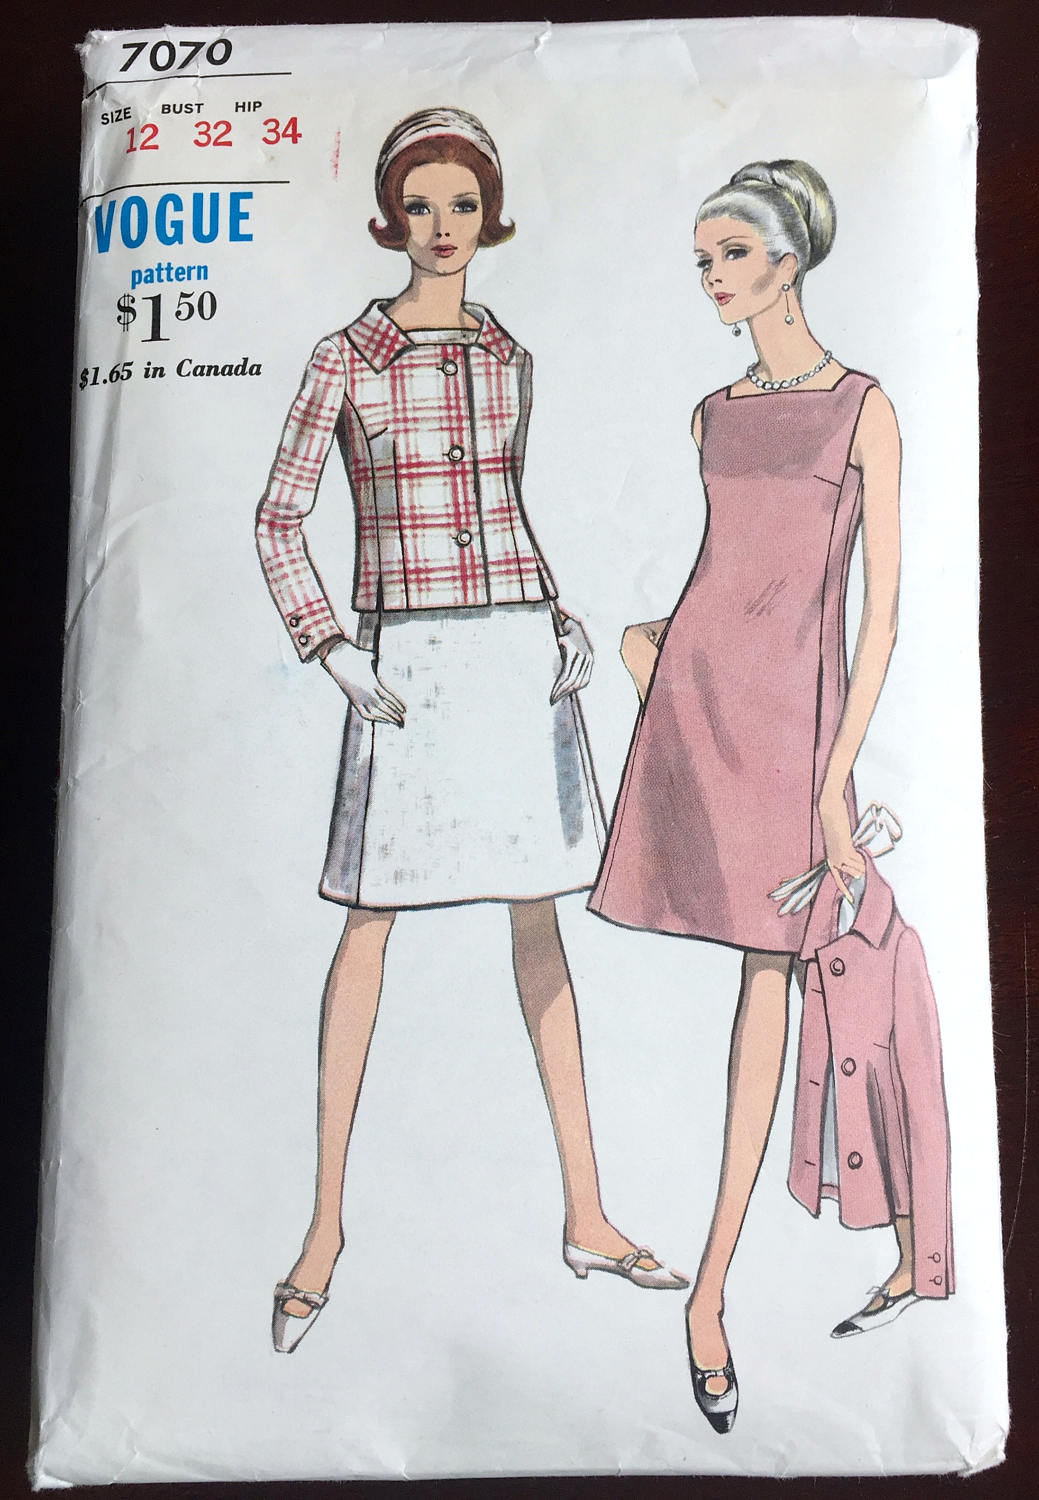 1960's Vogue One-Piece Dress with Jacket Pattern - Bust 32